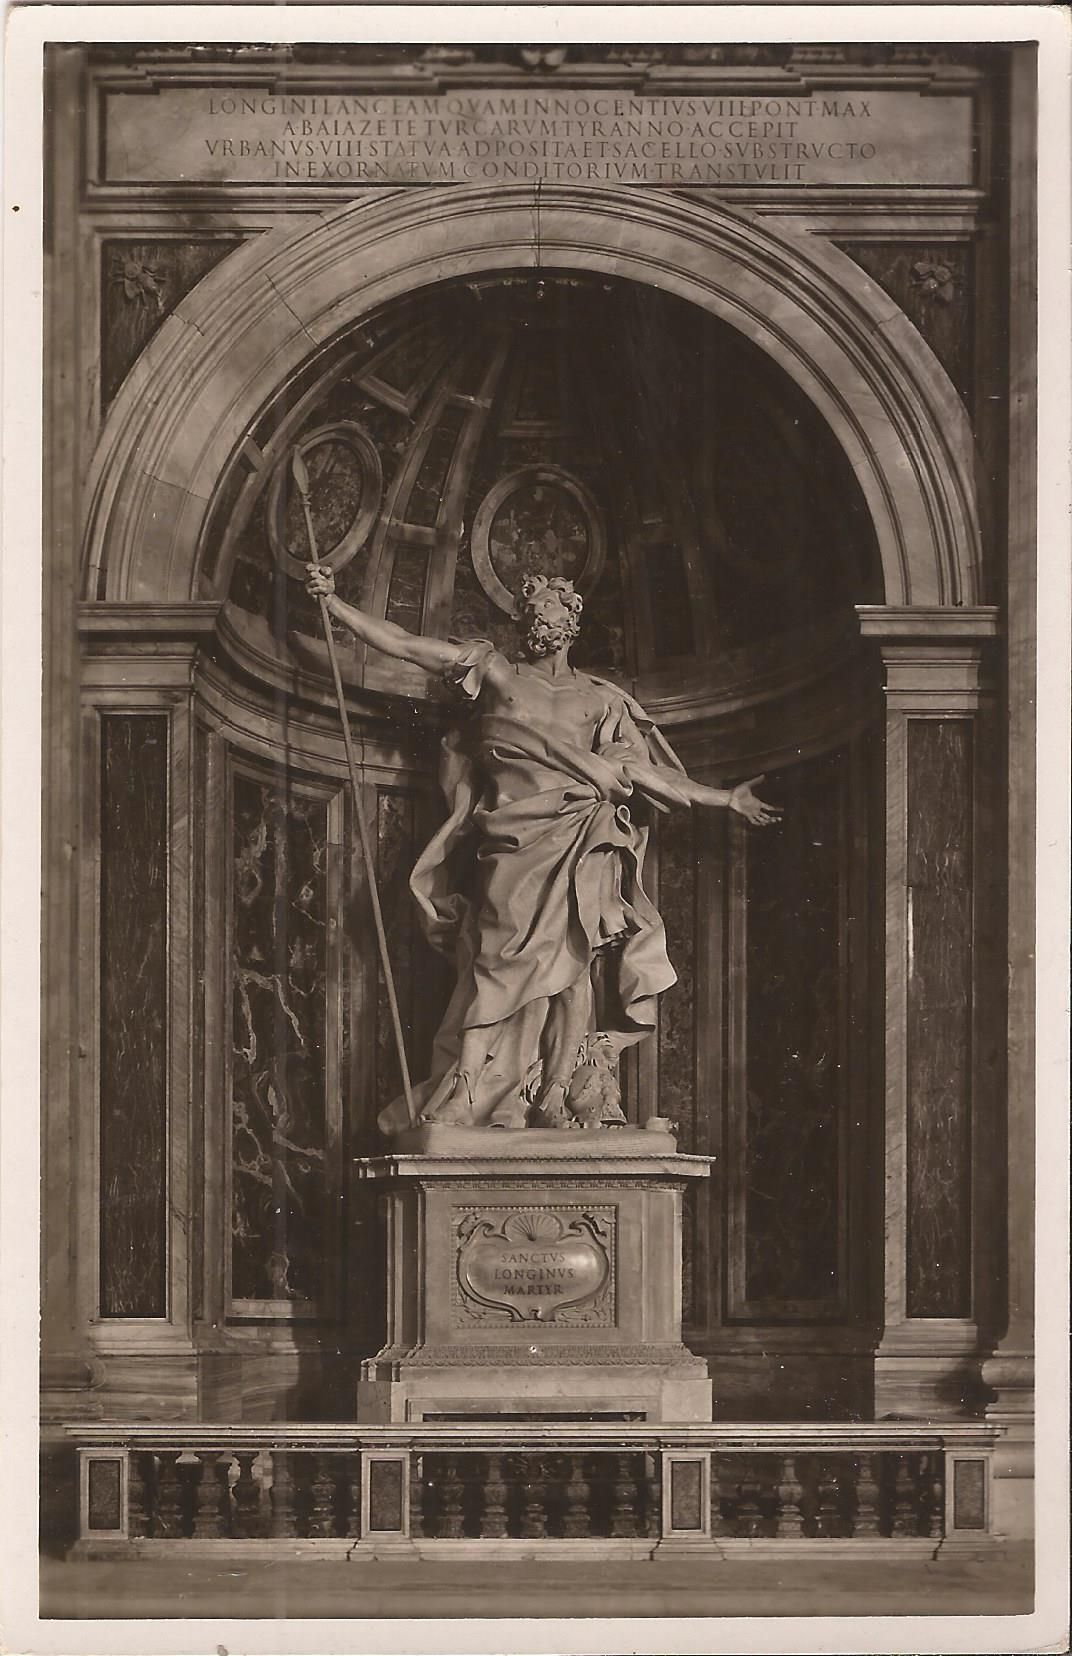 VINTAGE POSTCARD VATICAN CITY, ITALY Bernini Sculpture